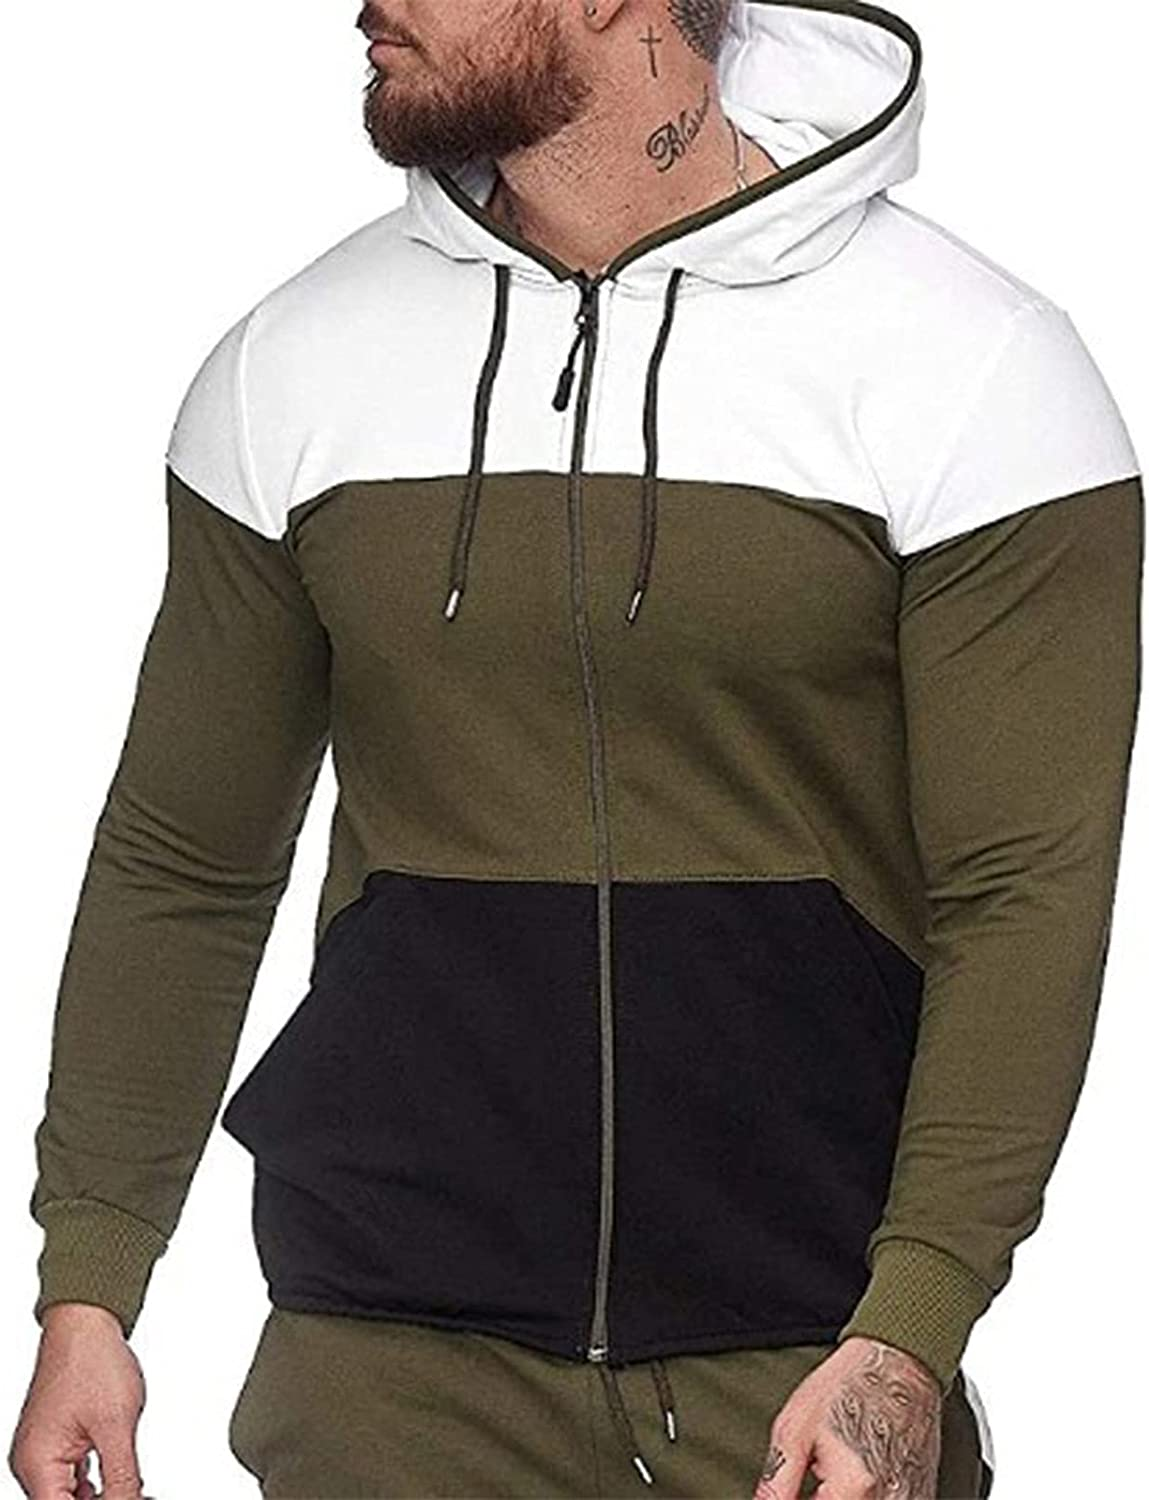 XXBR Stitching Hoodies for Mens, Zipper Color Block Patchwork Drawstring Casual Hooded Sweatshirts Workout Fit Jacket